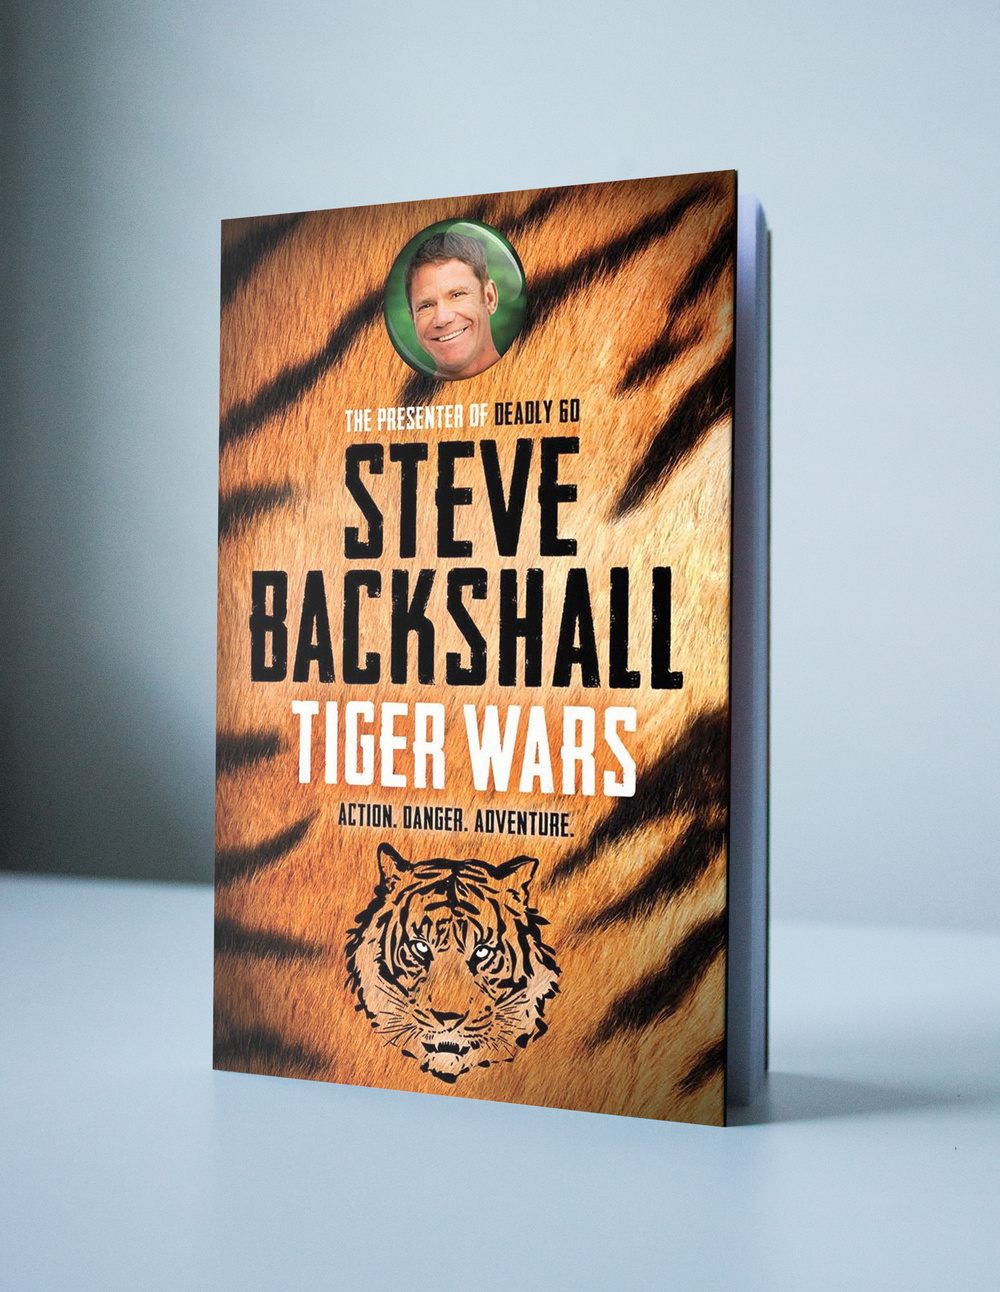 Steve Backshall Tiger Wars